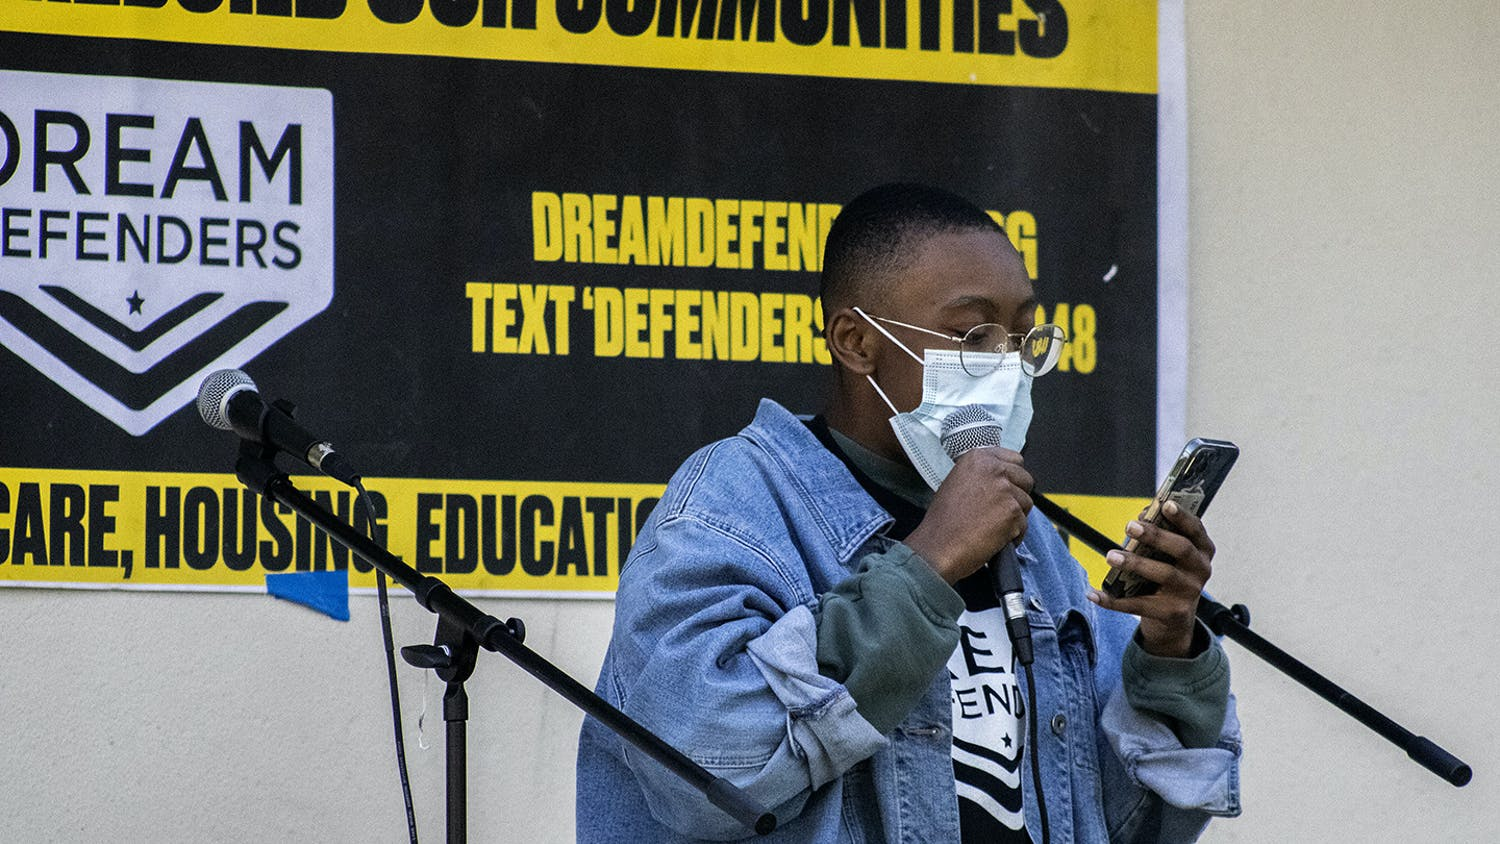 Dayanna Peek, a UF international studies freshman, speaks at a GoDDsville Dream Defenders event bringing awareness to Florida House Bill 1 on Friday, April 2, 2021.